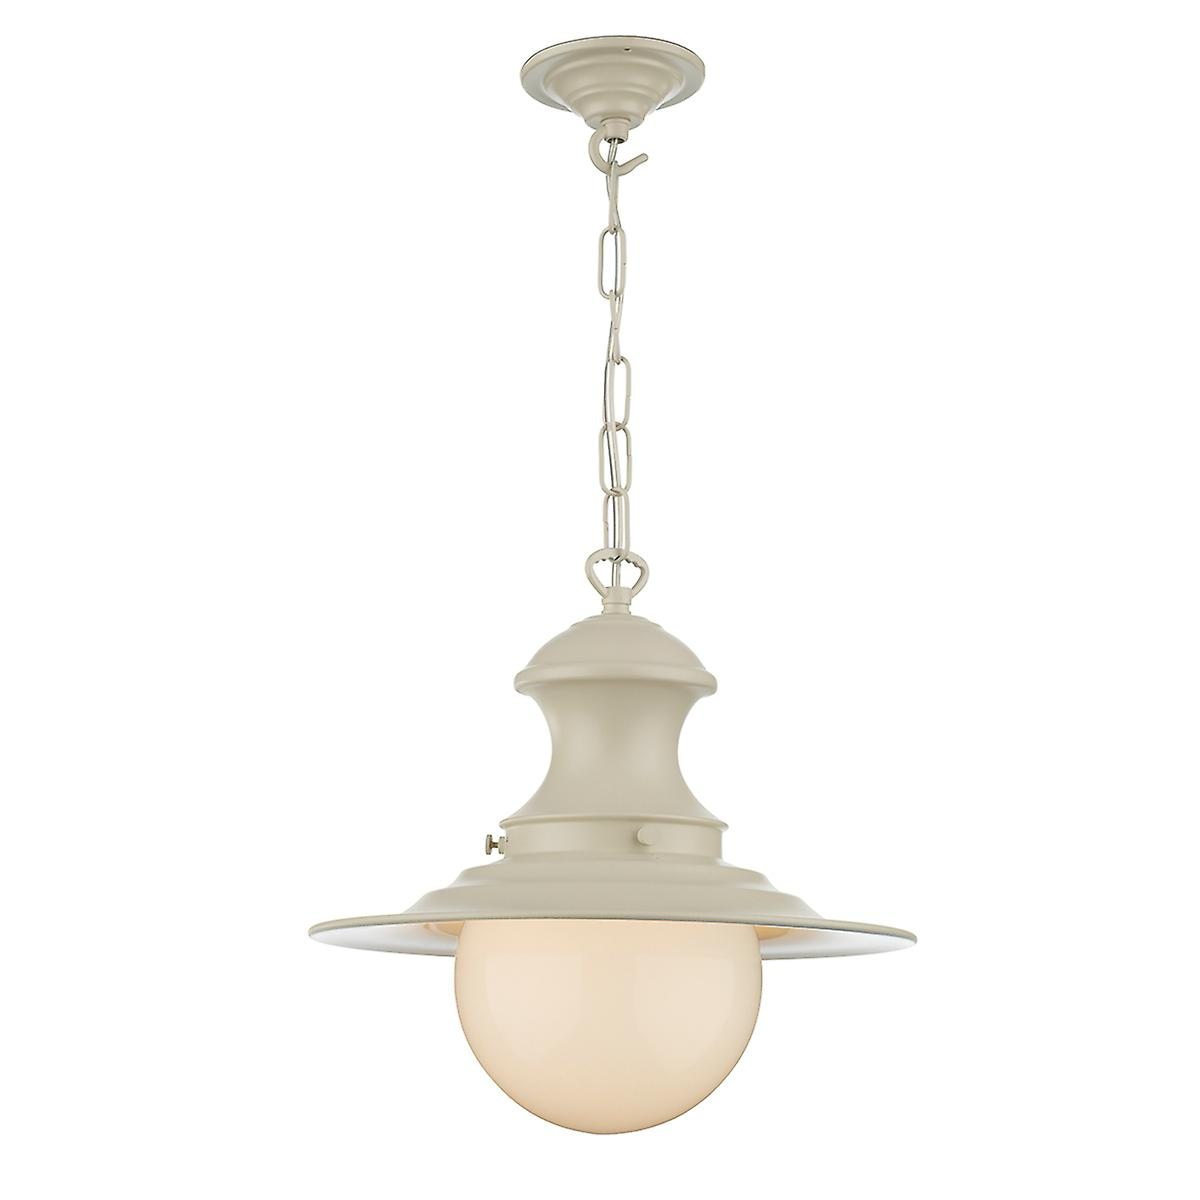 David Hunt EP0133 Station Small Baby Pendant Lamp In Cotswold Cream